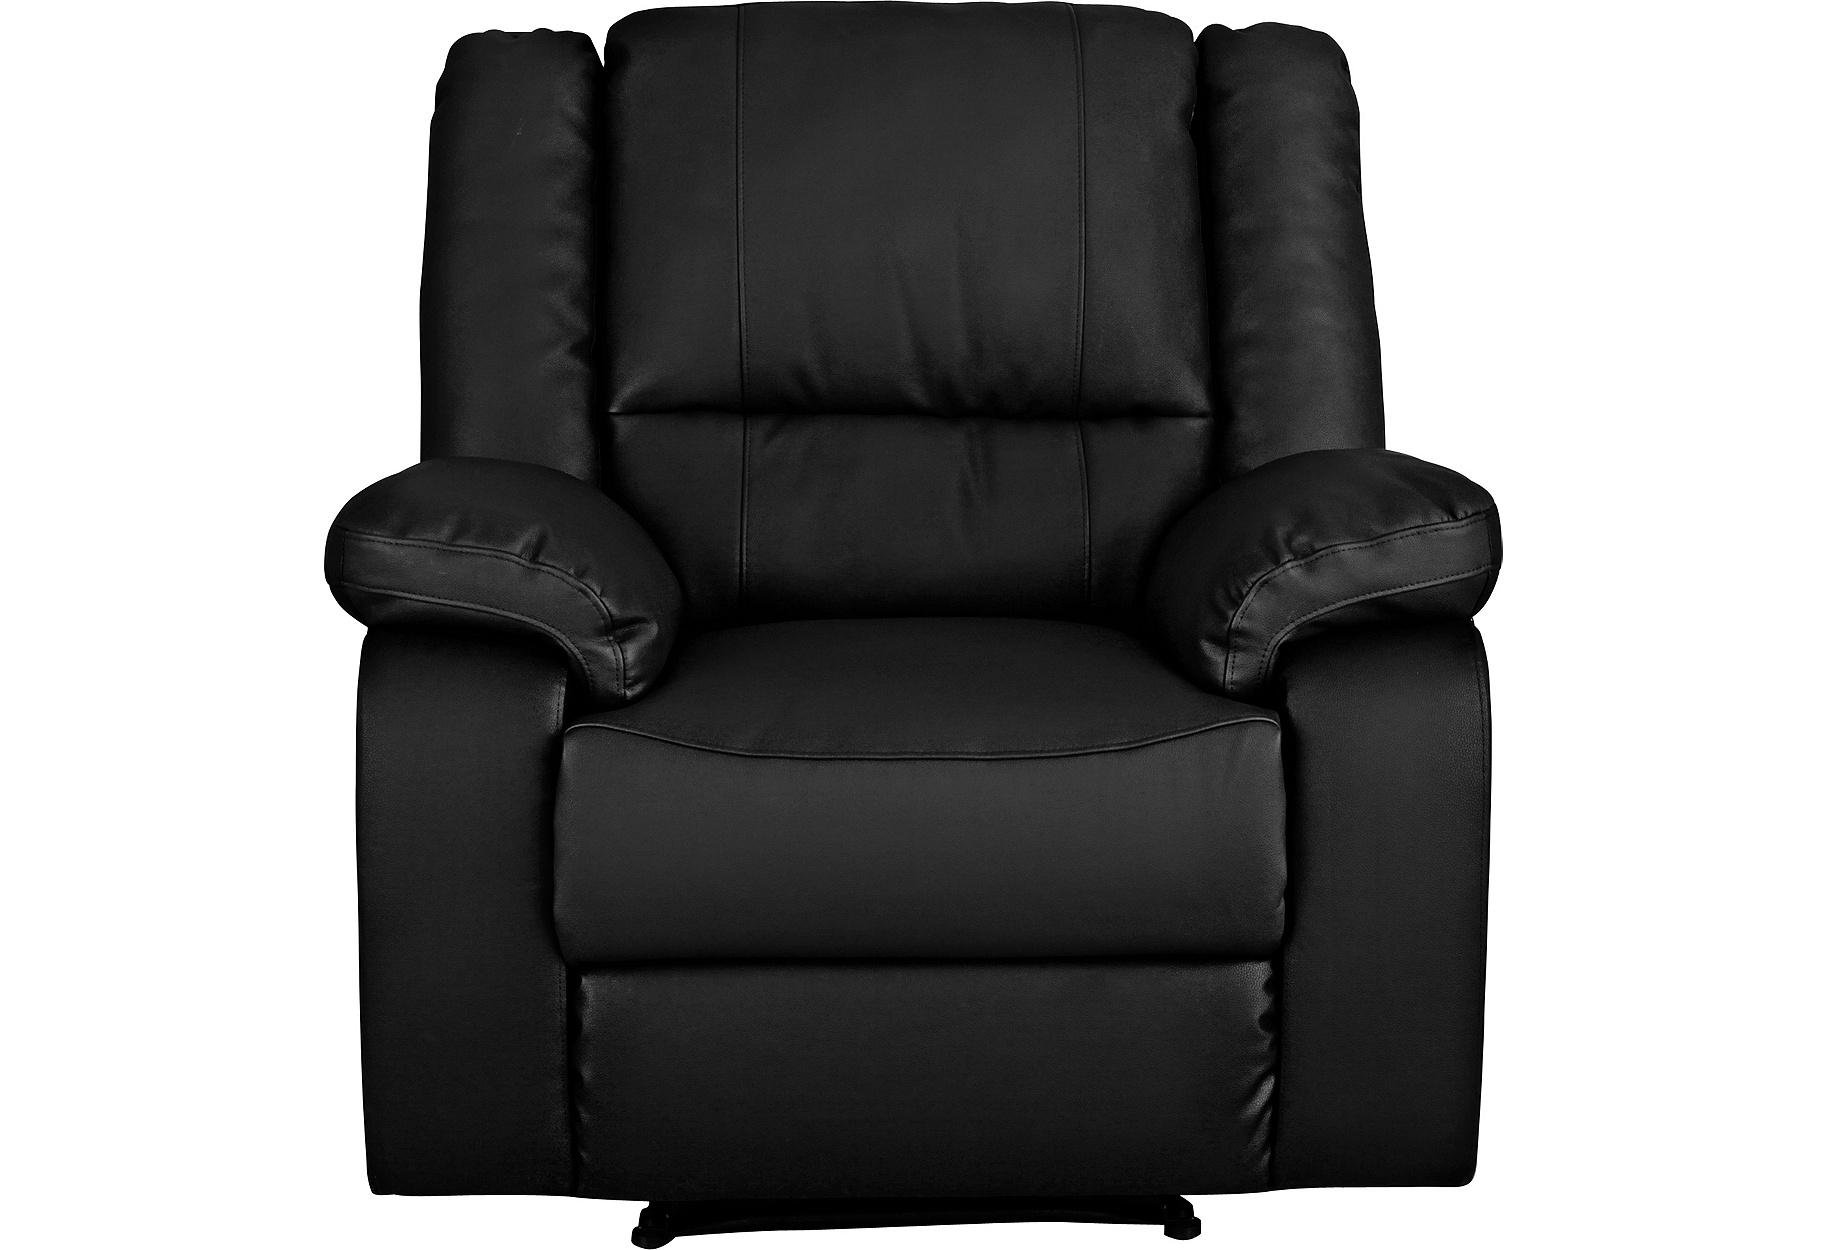 Argos Home Bruno Leather Effect Manual Recliner Chair - Blk